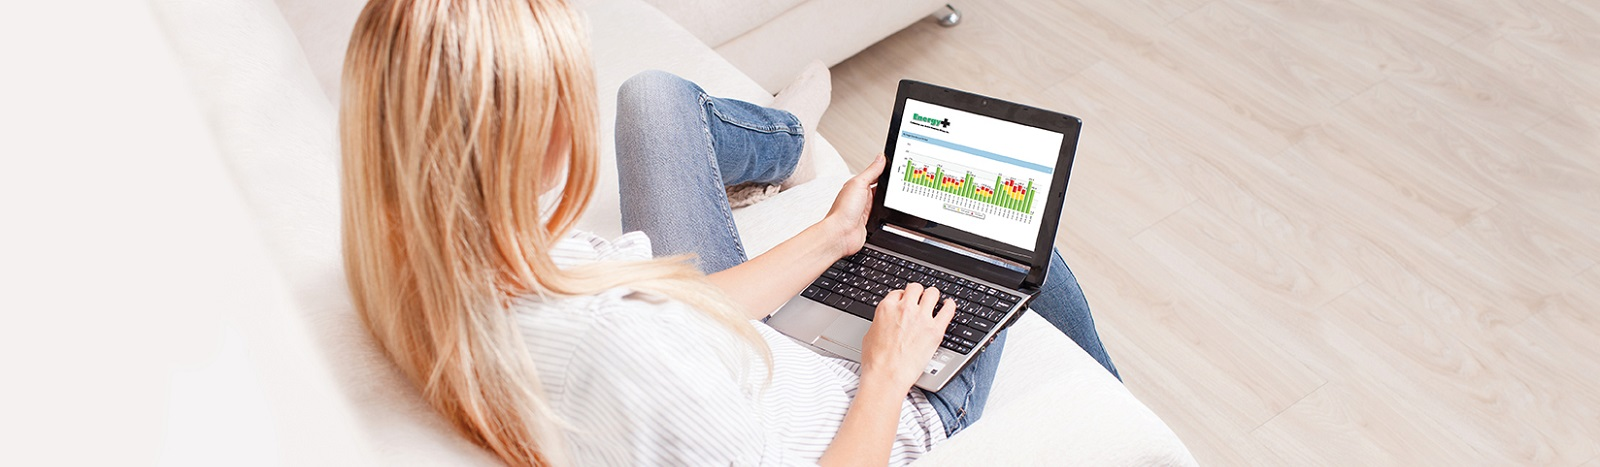 Woman on laptop reviewing hydro bill